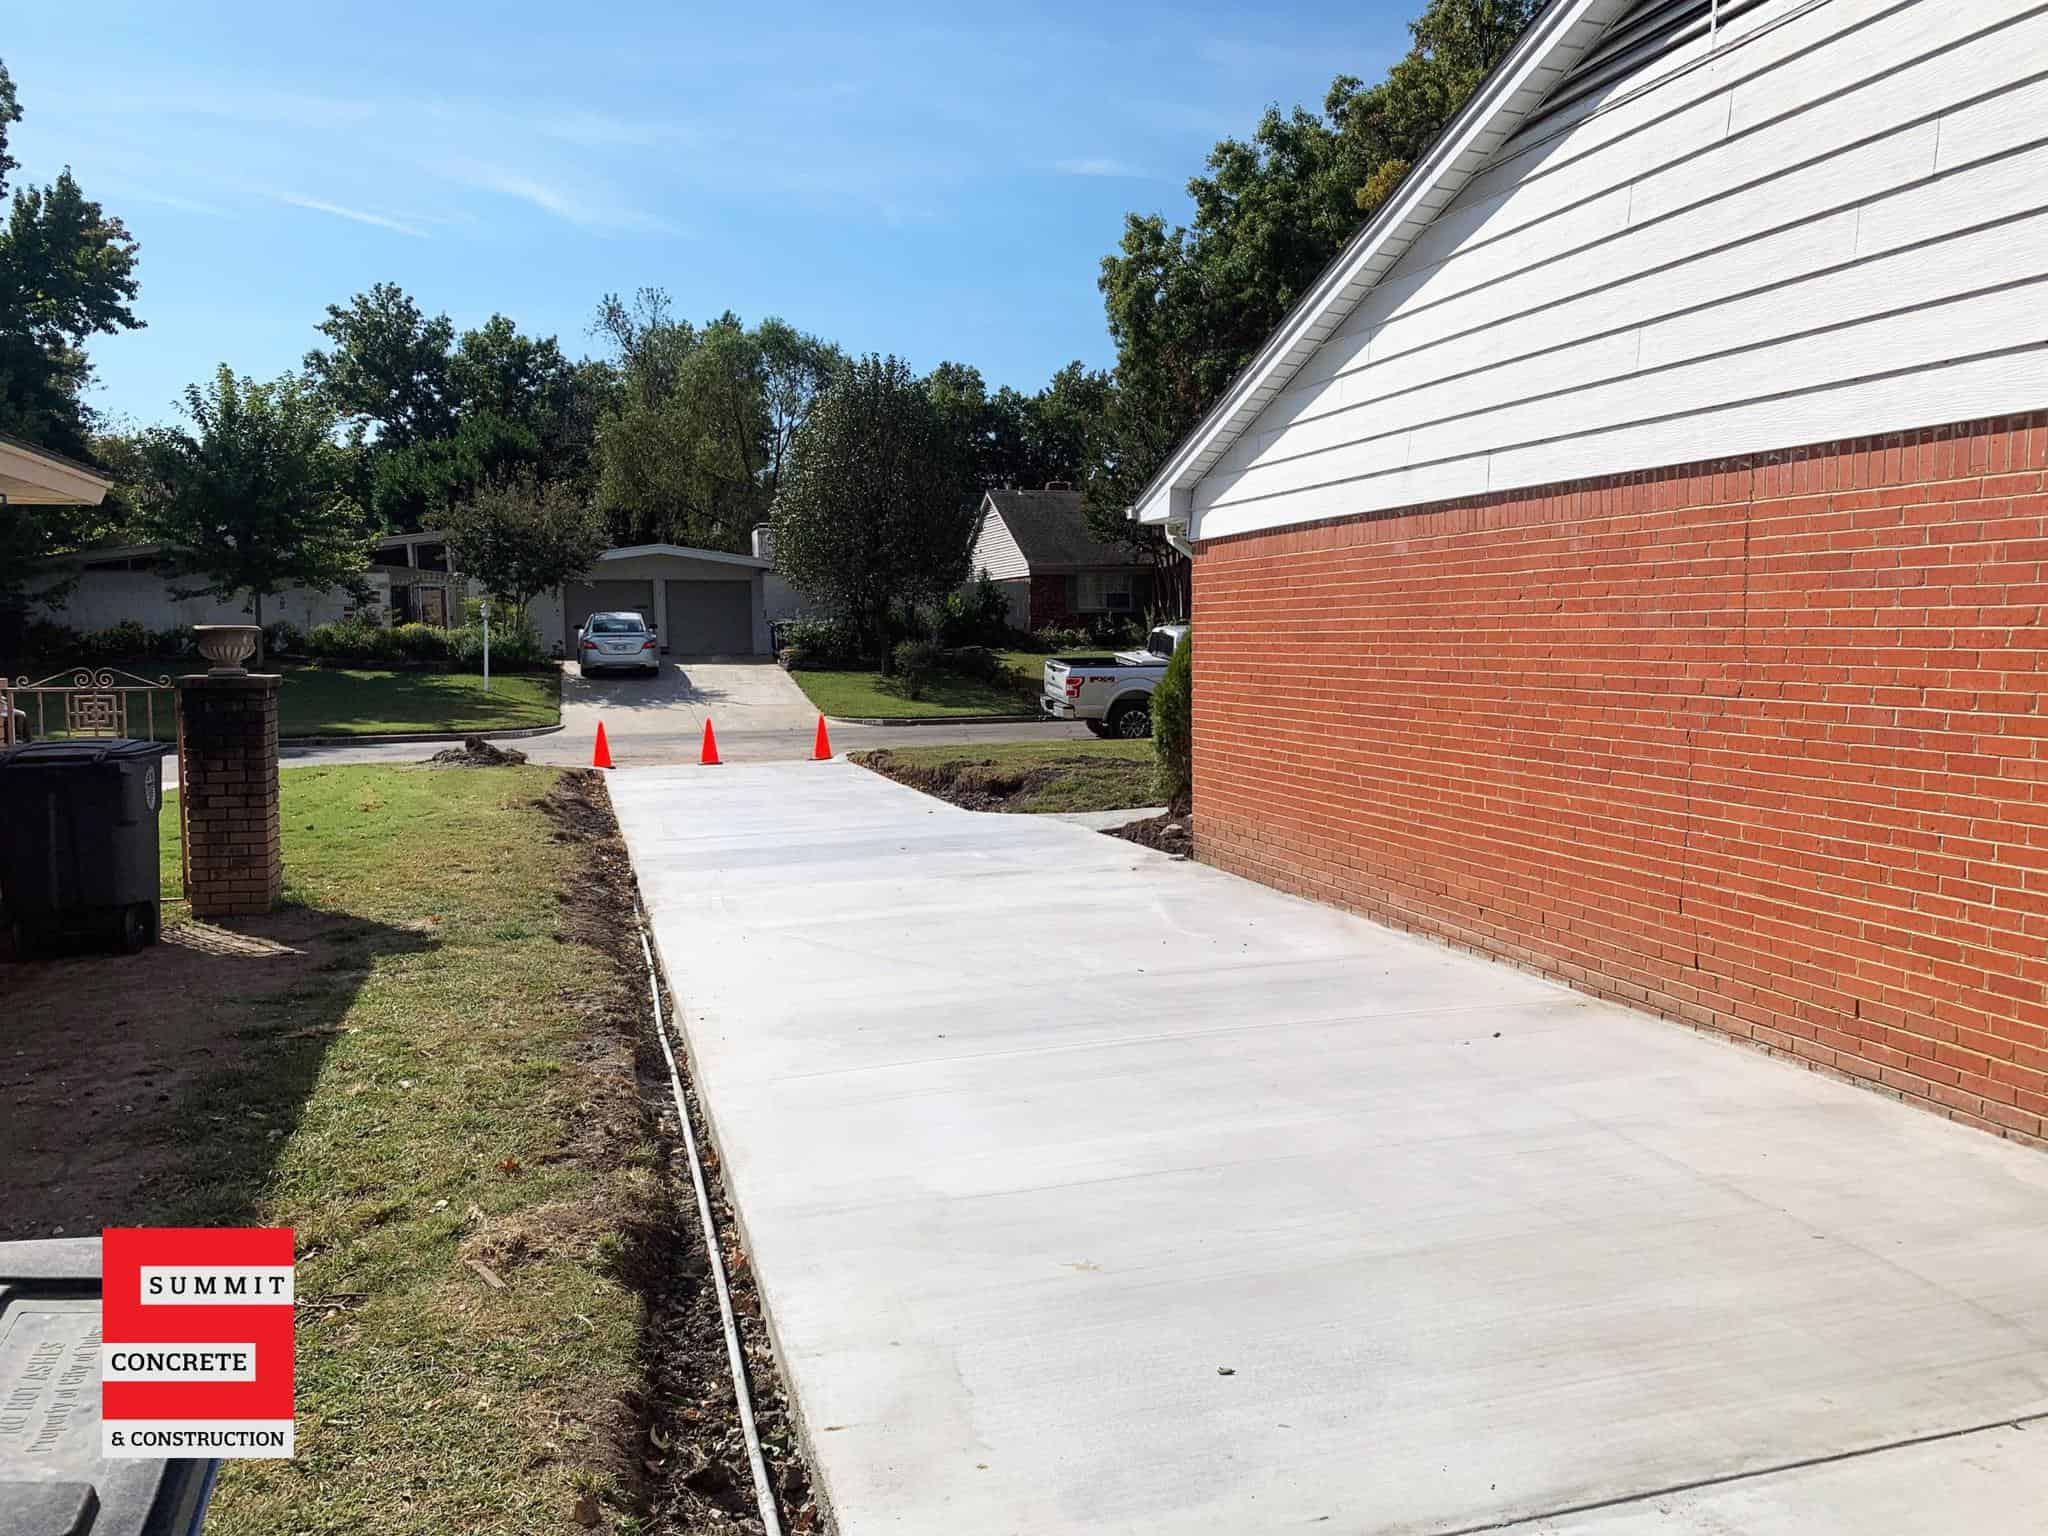 2020 10 concrete driveway walkway installation IMG 6877 scaled